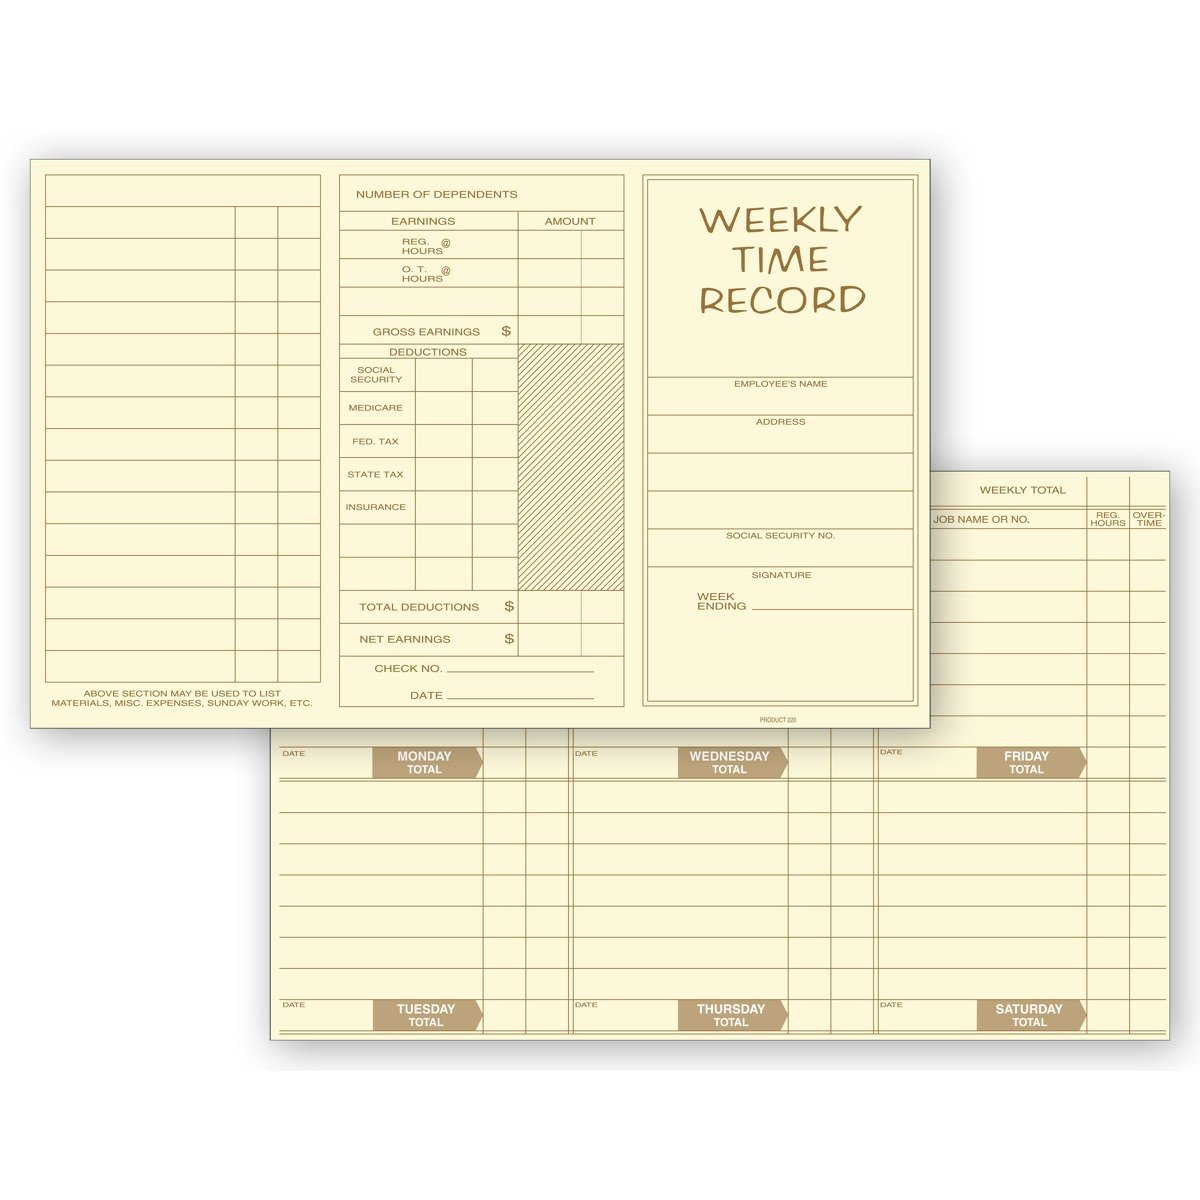 Pocket Size Weekly Time Cards - Pre-Printed for Jobs, Hours, Overtime, Earnings, Deductions (1000 qty)